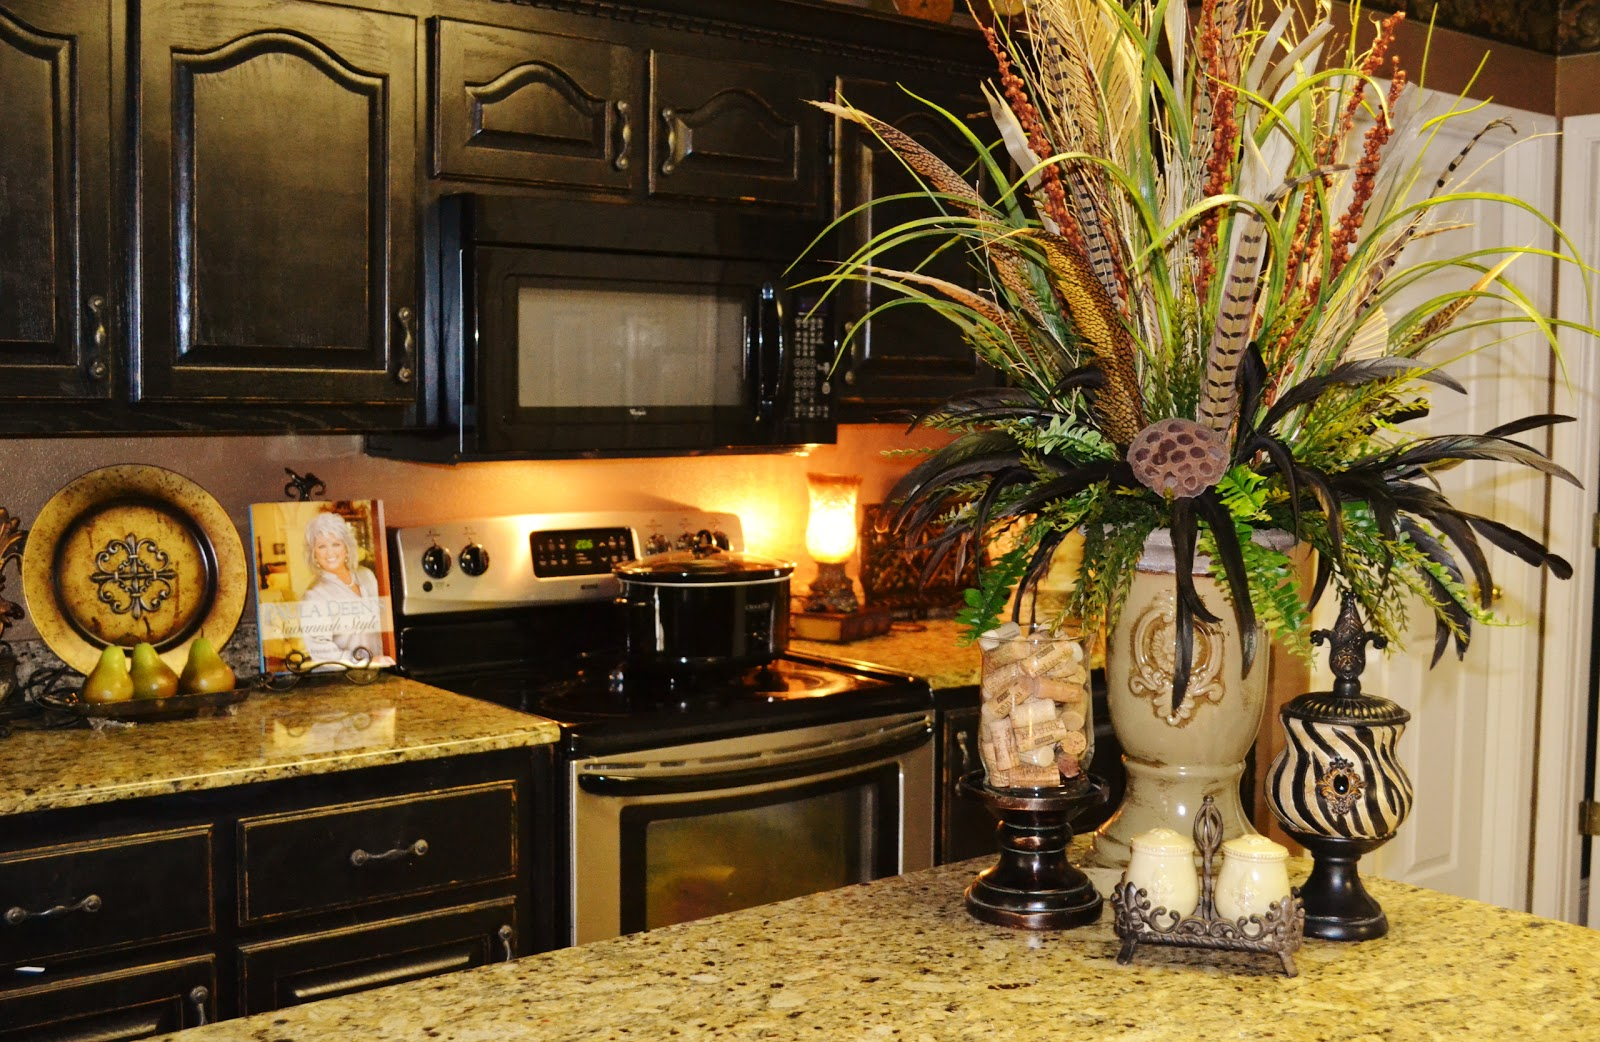 Kitchen Island Jpg 1 600 1 042 Pixels For The Home